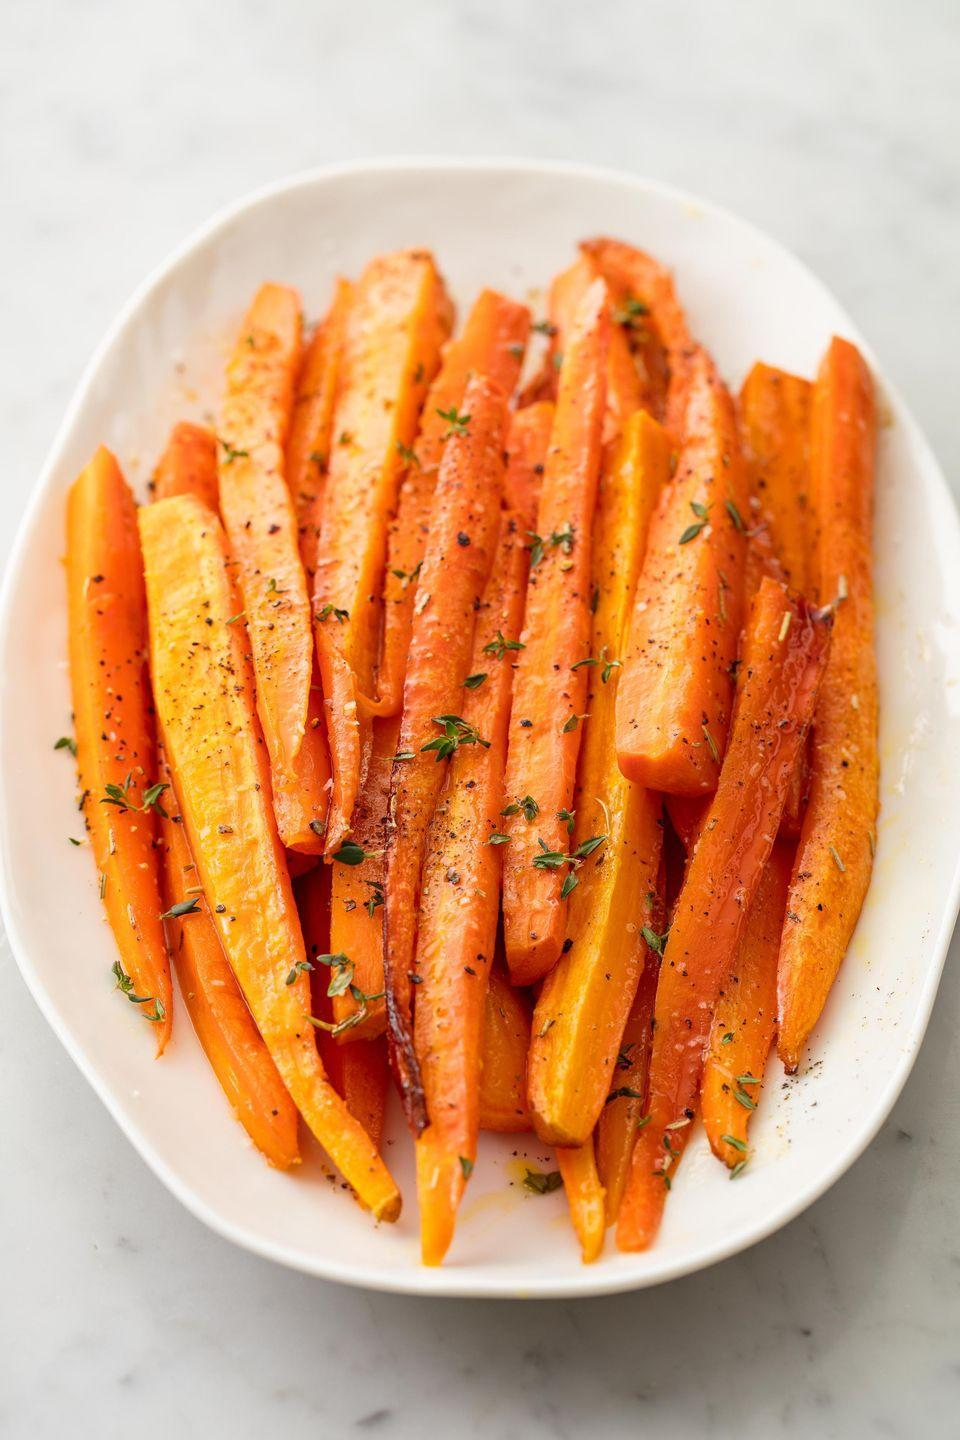 """<p>How do you show picky eaters how delicious vegetables can be? The answer is two-part: First, you make a sweet and sticky glaze; then, you roast. in the oven, the honey butter caramelises and turns plain, boring carrots into the most addictive side dish.</p><p><br>Get the <a href=""""http://www.delish.com/uk/cooking/recipes/a28934289/honey-glazed-carrots-recipe/"""" rel=""""nofollow noopener"""" target=""""_blank"""" data-ylk=""""slk:Honey-Glazed Carrot"""" class=""""link rapid-noclick-resp"""">Honey-Glazed Carrot</a> recipe. </p>"""